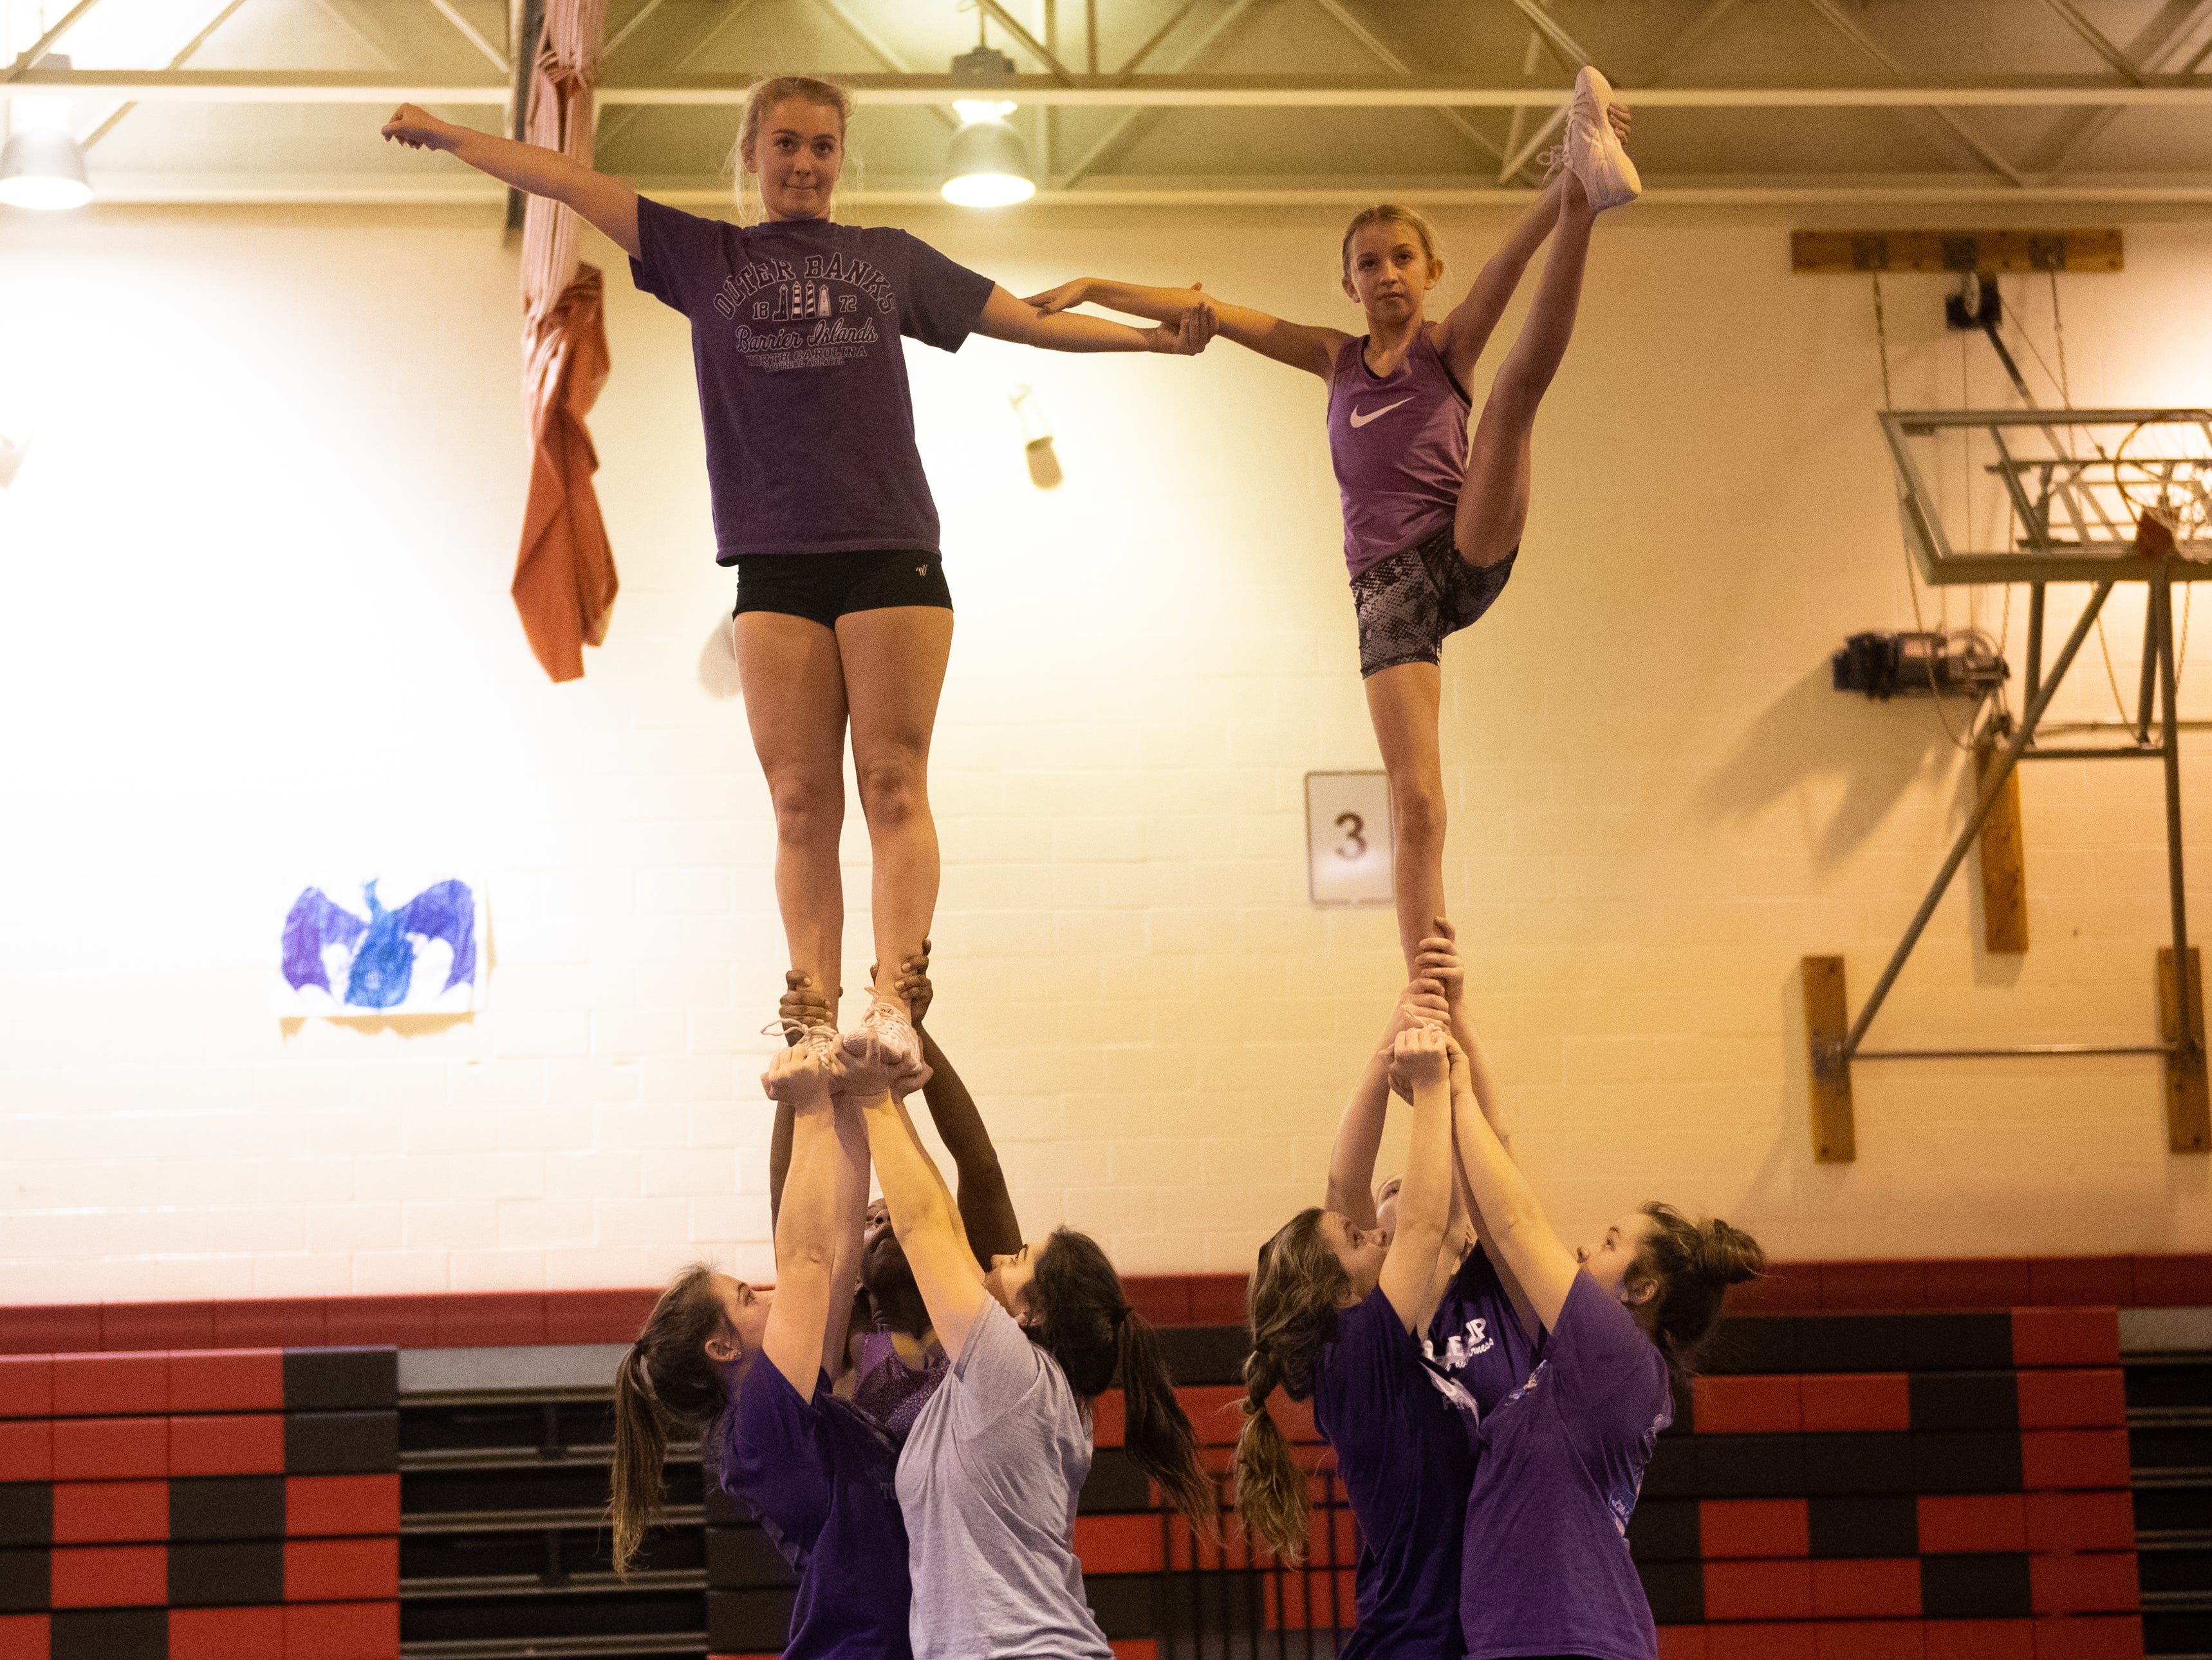 Dover's competitive spirit team practices the right side of the stunt, November 14, 2018.